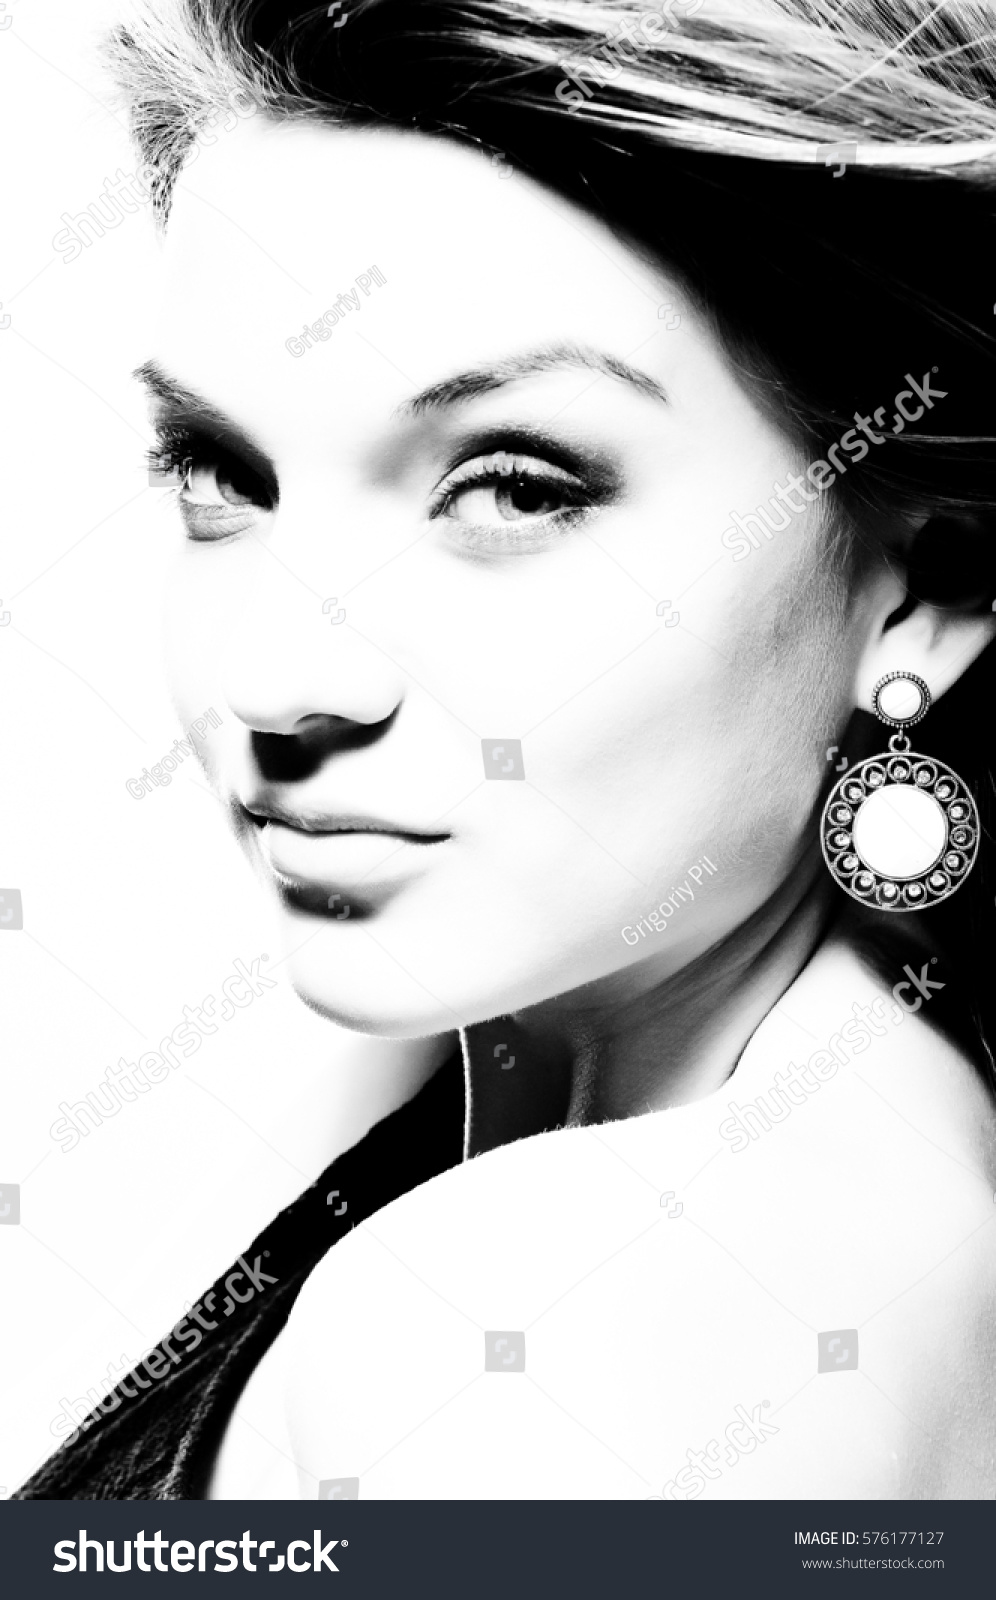 High contrast black and white portrait stock photo 576177127